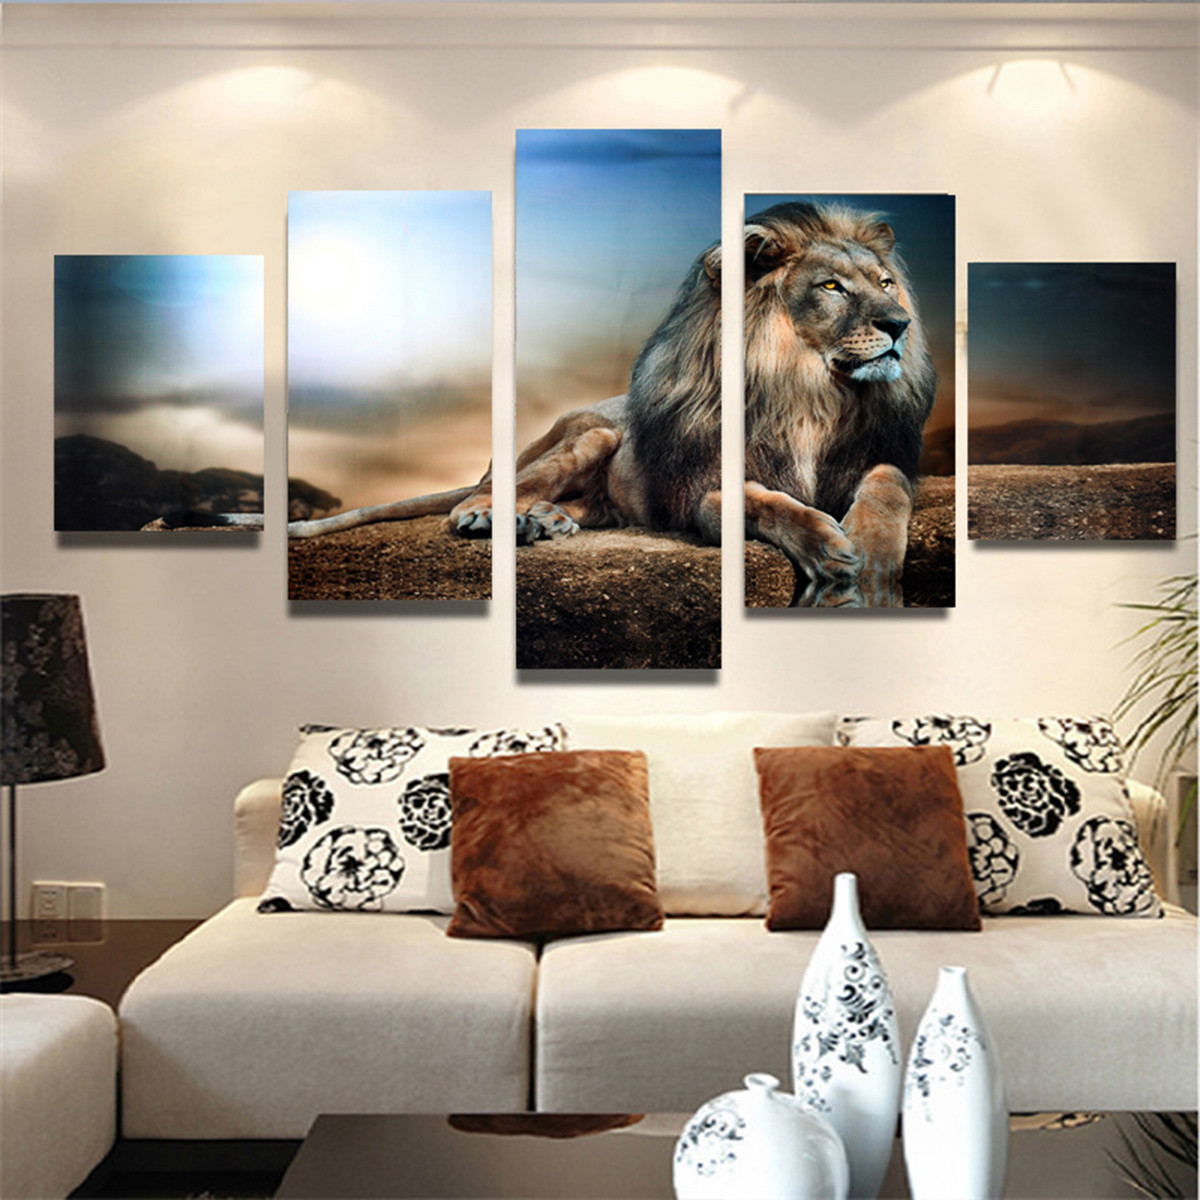 5pcs frameless canvas print sitting lion wall art painting picture home decoration at banggood. Black Bedroom Furniture Sets. Home Design Ideas